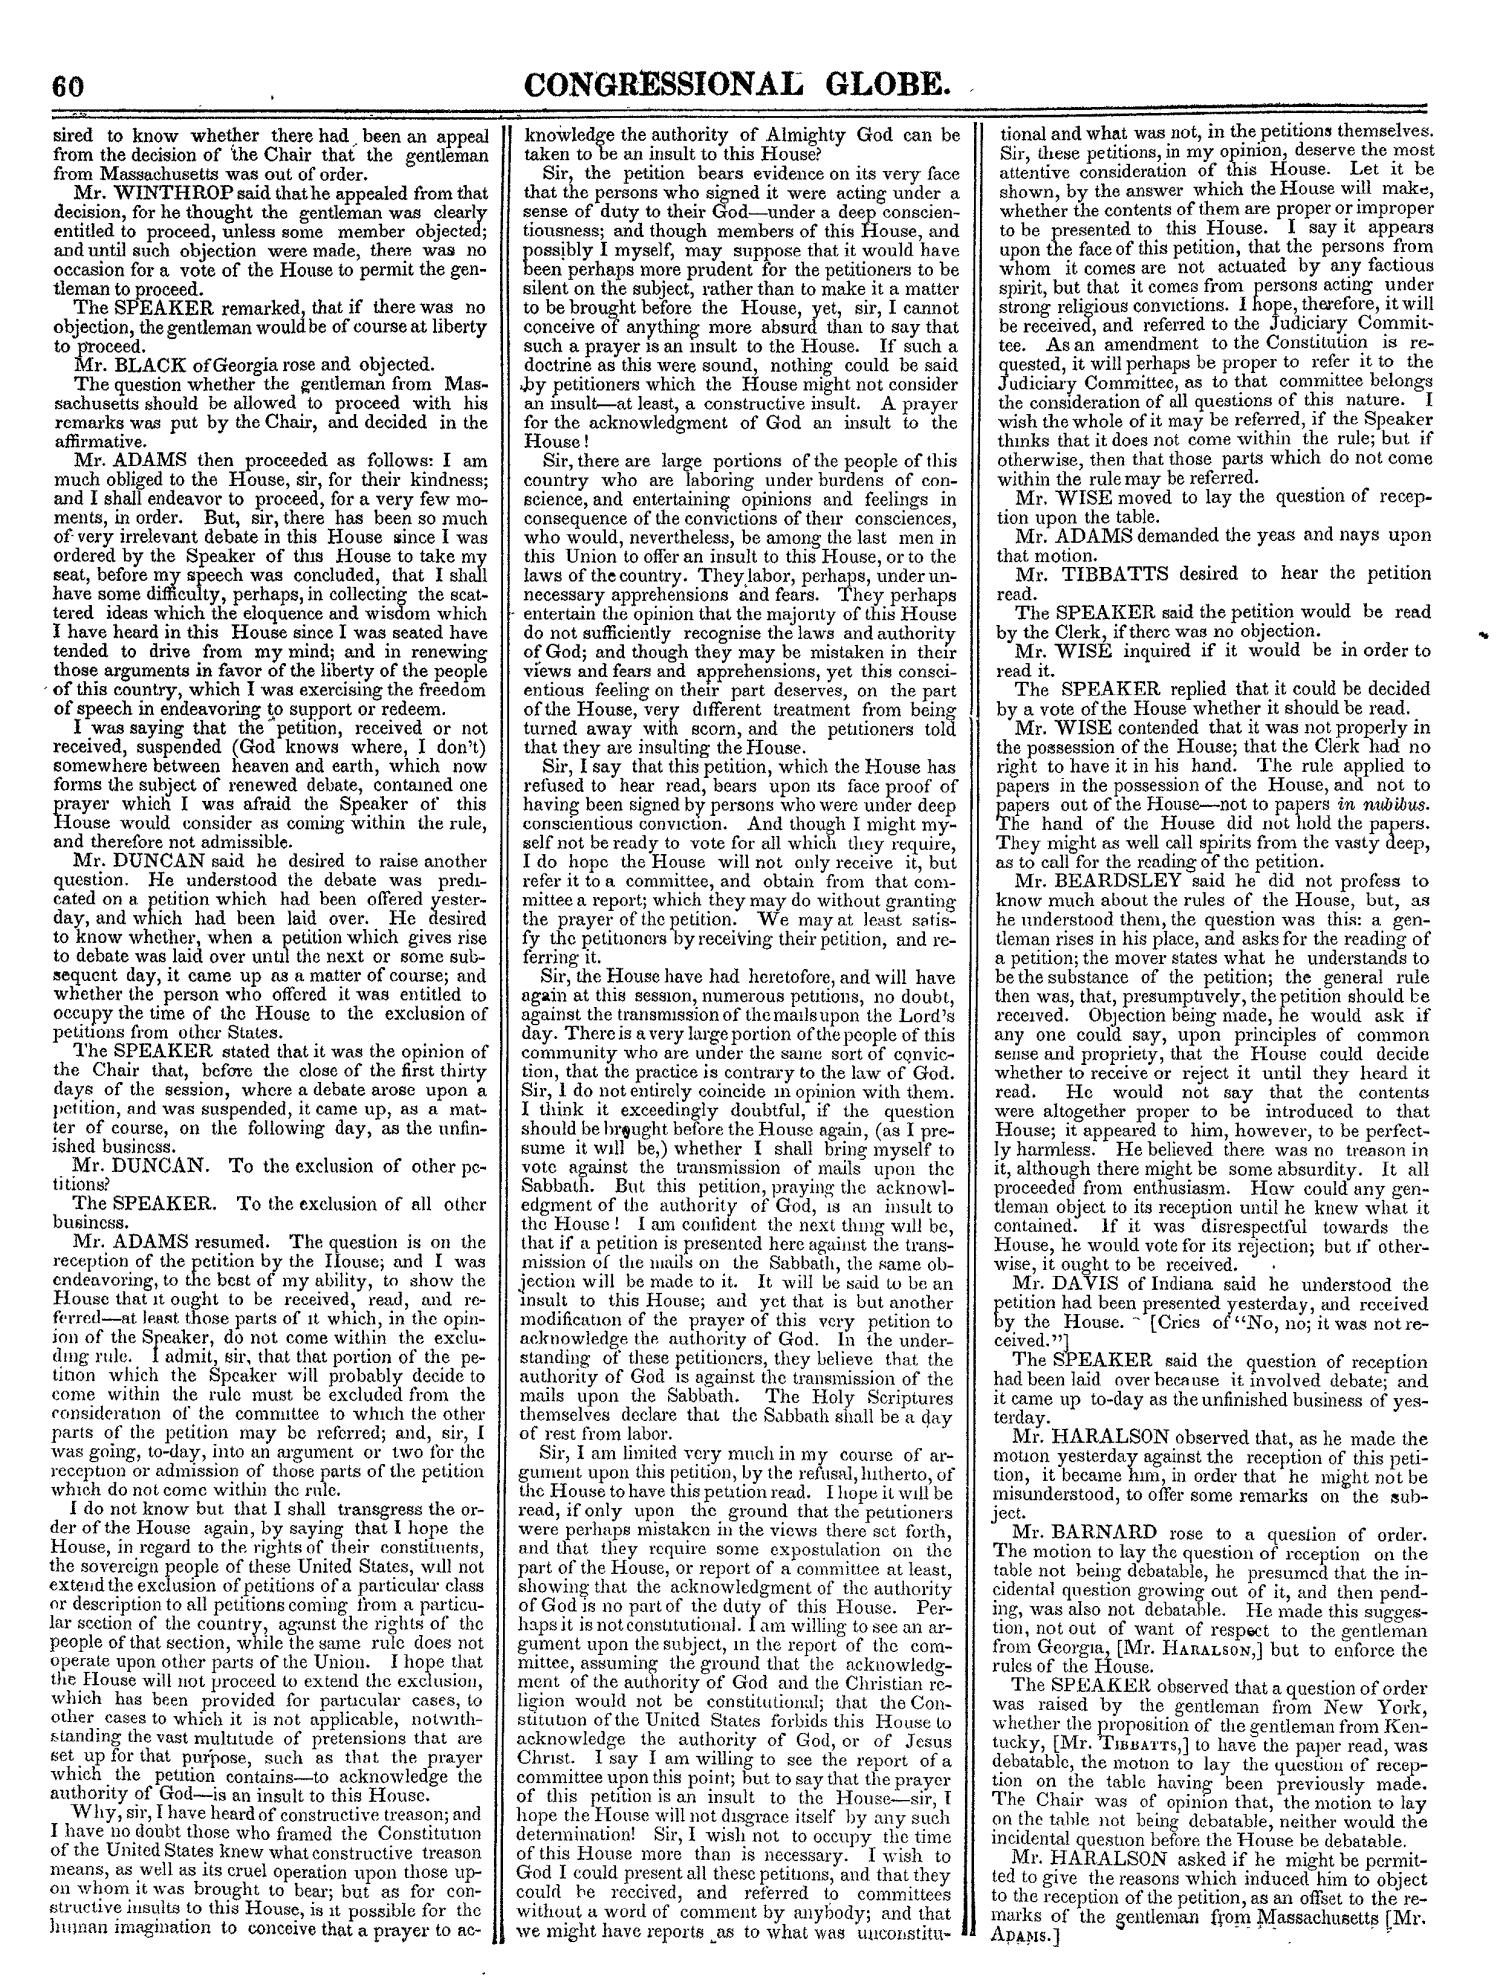 The Congressional Globe, Volume 13, Part 1: Twenty-Eighth Congress, First Session                                                                                                      60